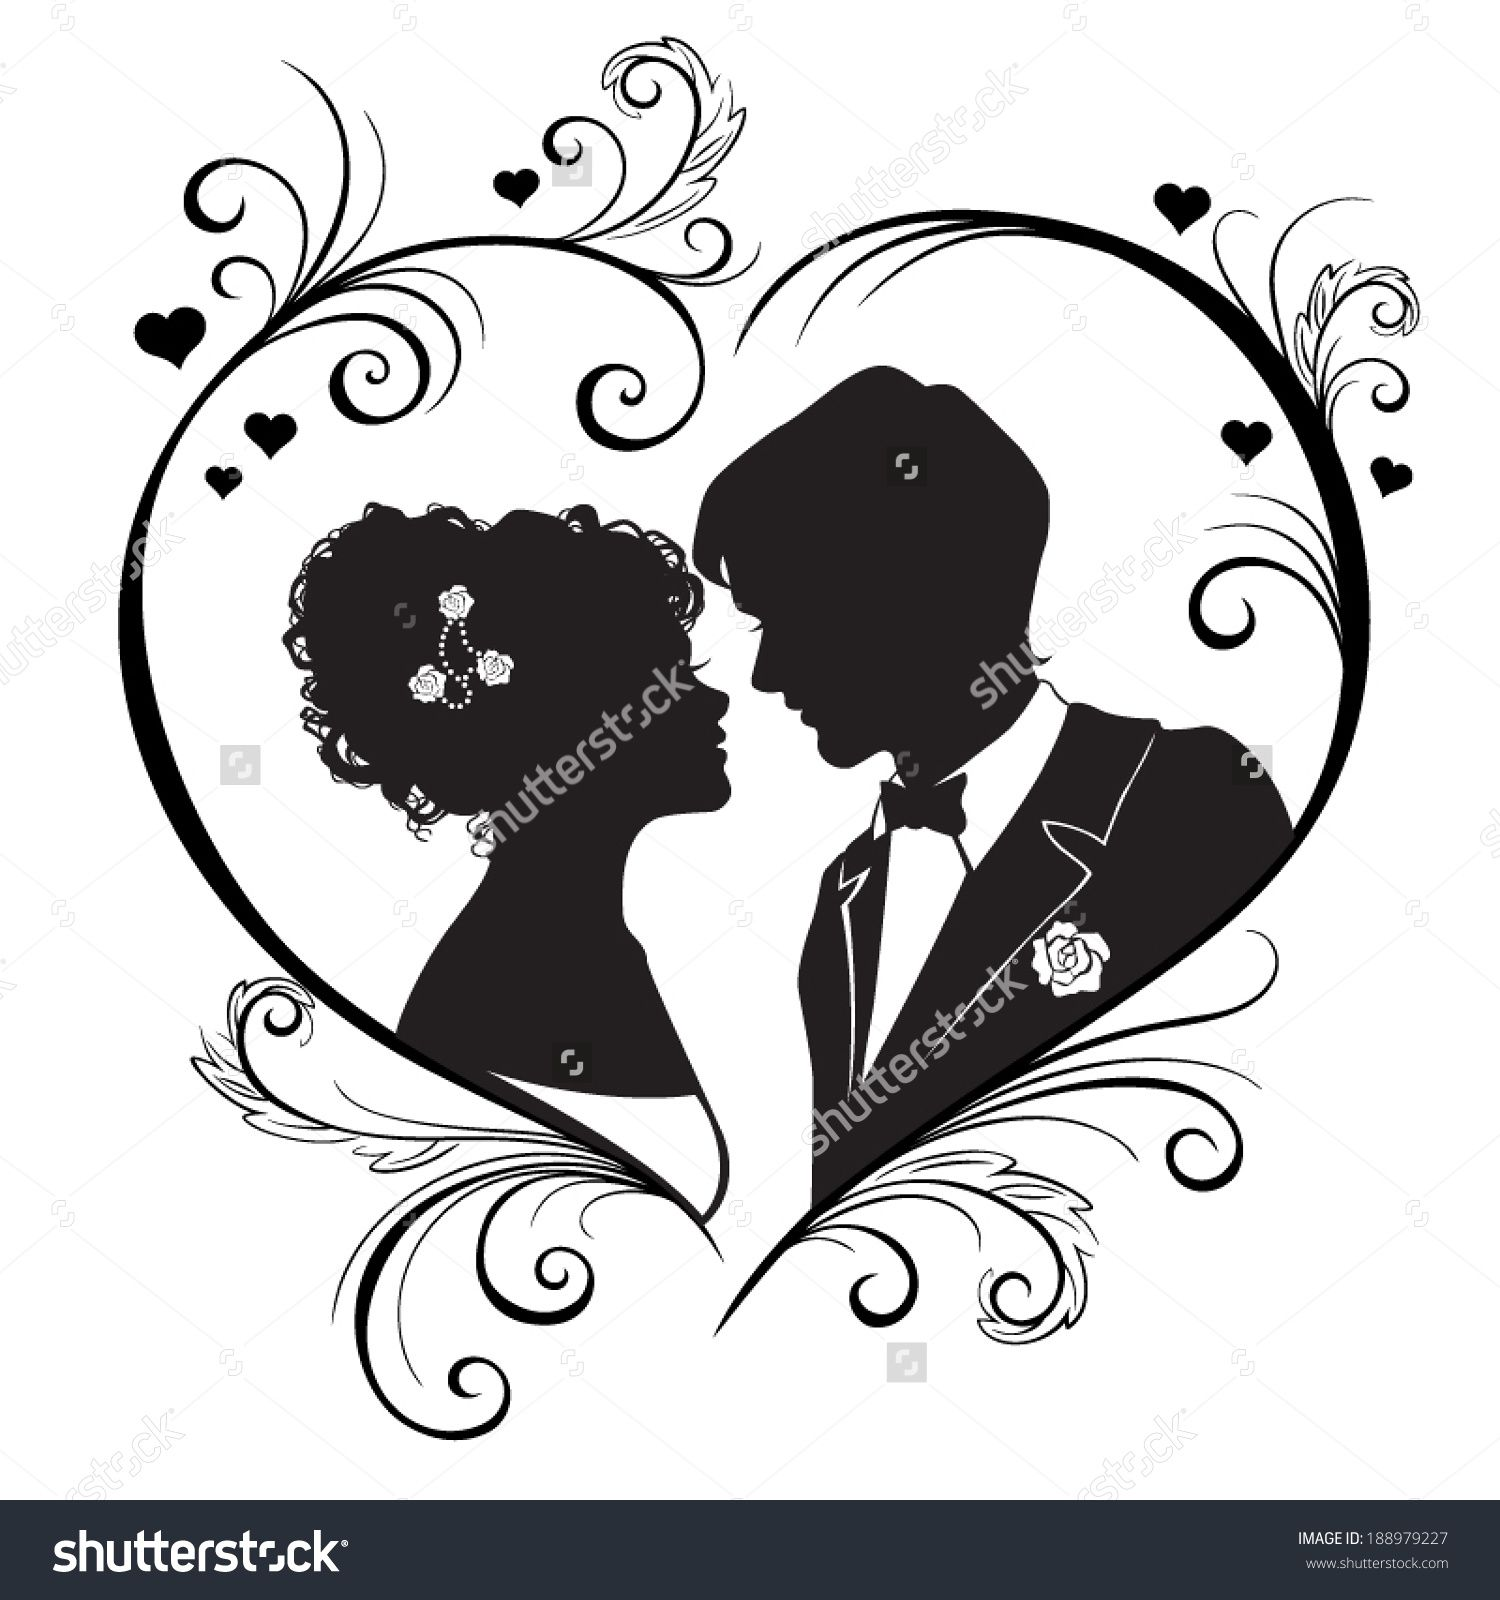 8 x BRIDE /& GROOM WEDDING SILHOUETTE  #4 Die Cuts Quality Black Card